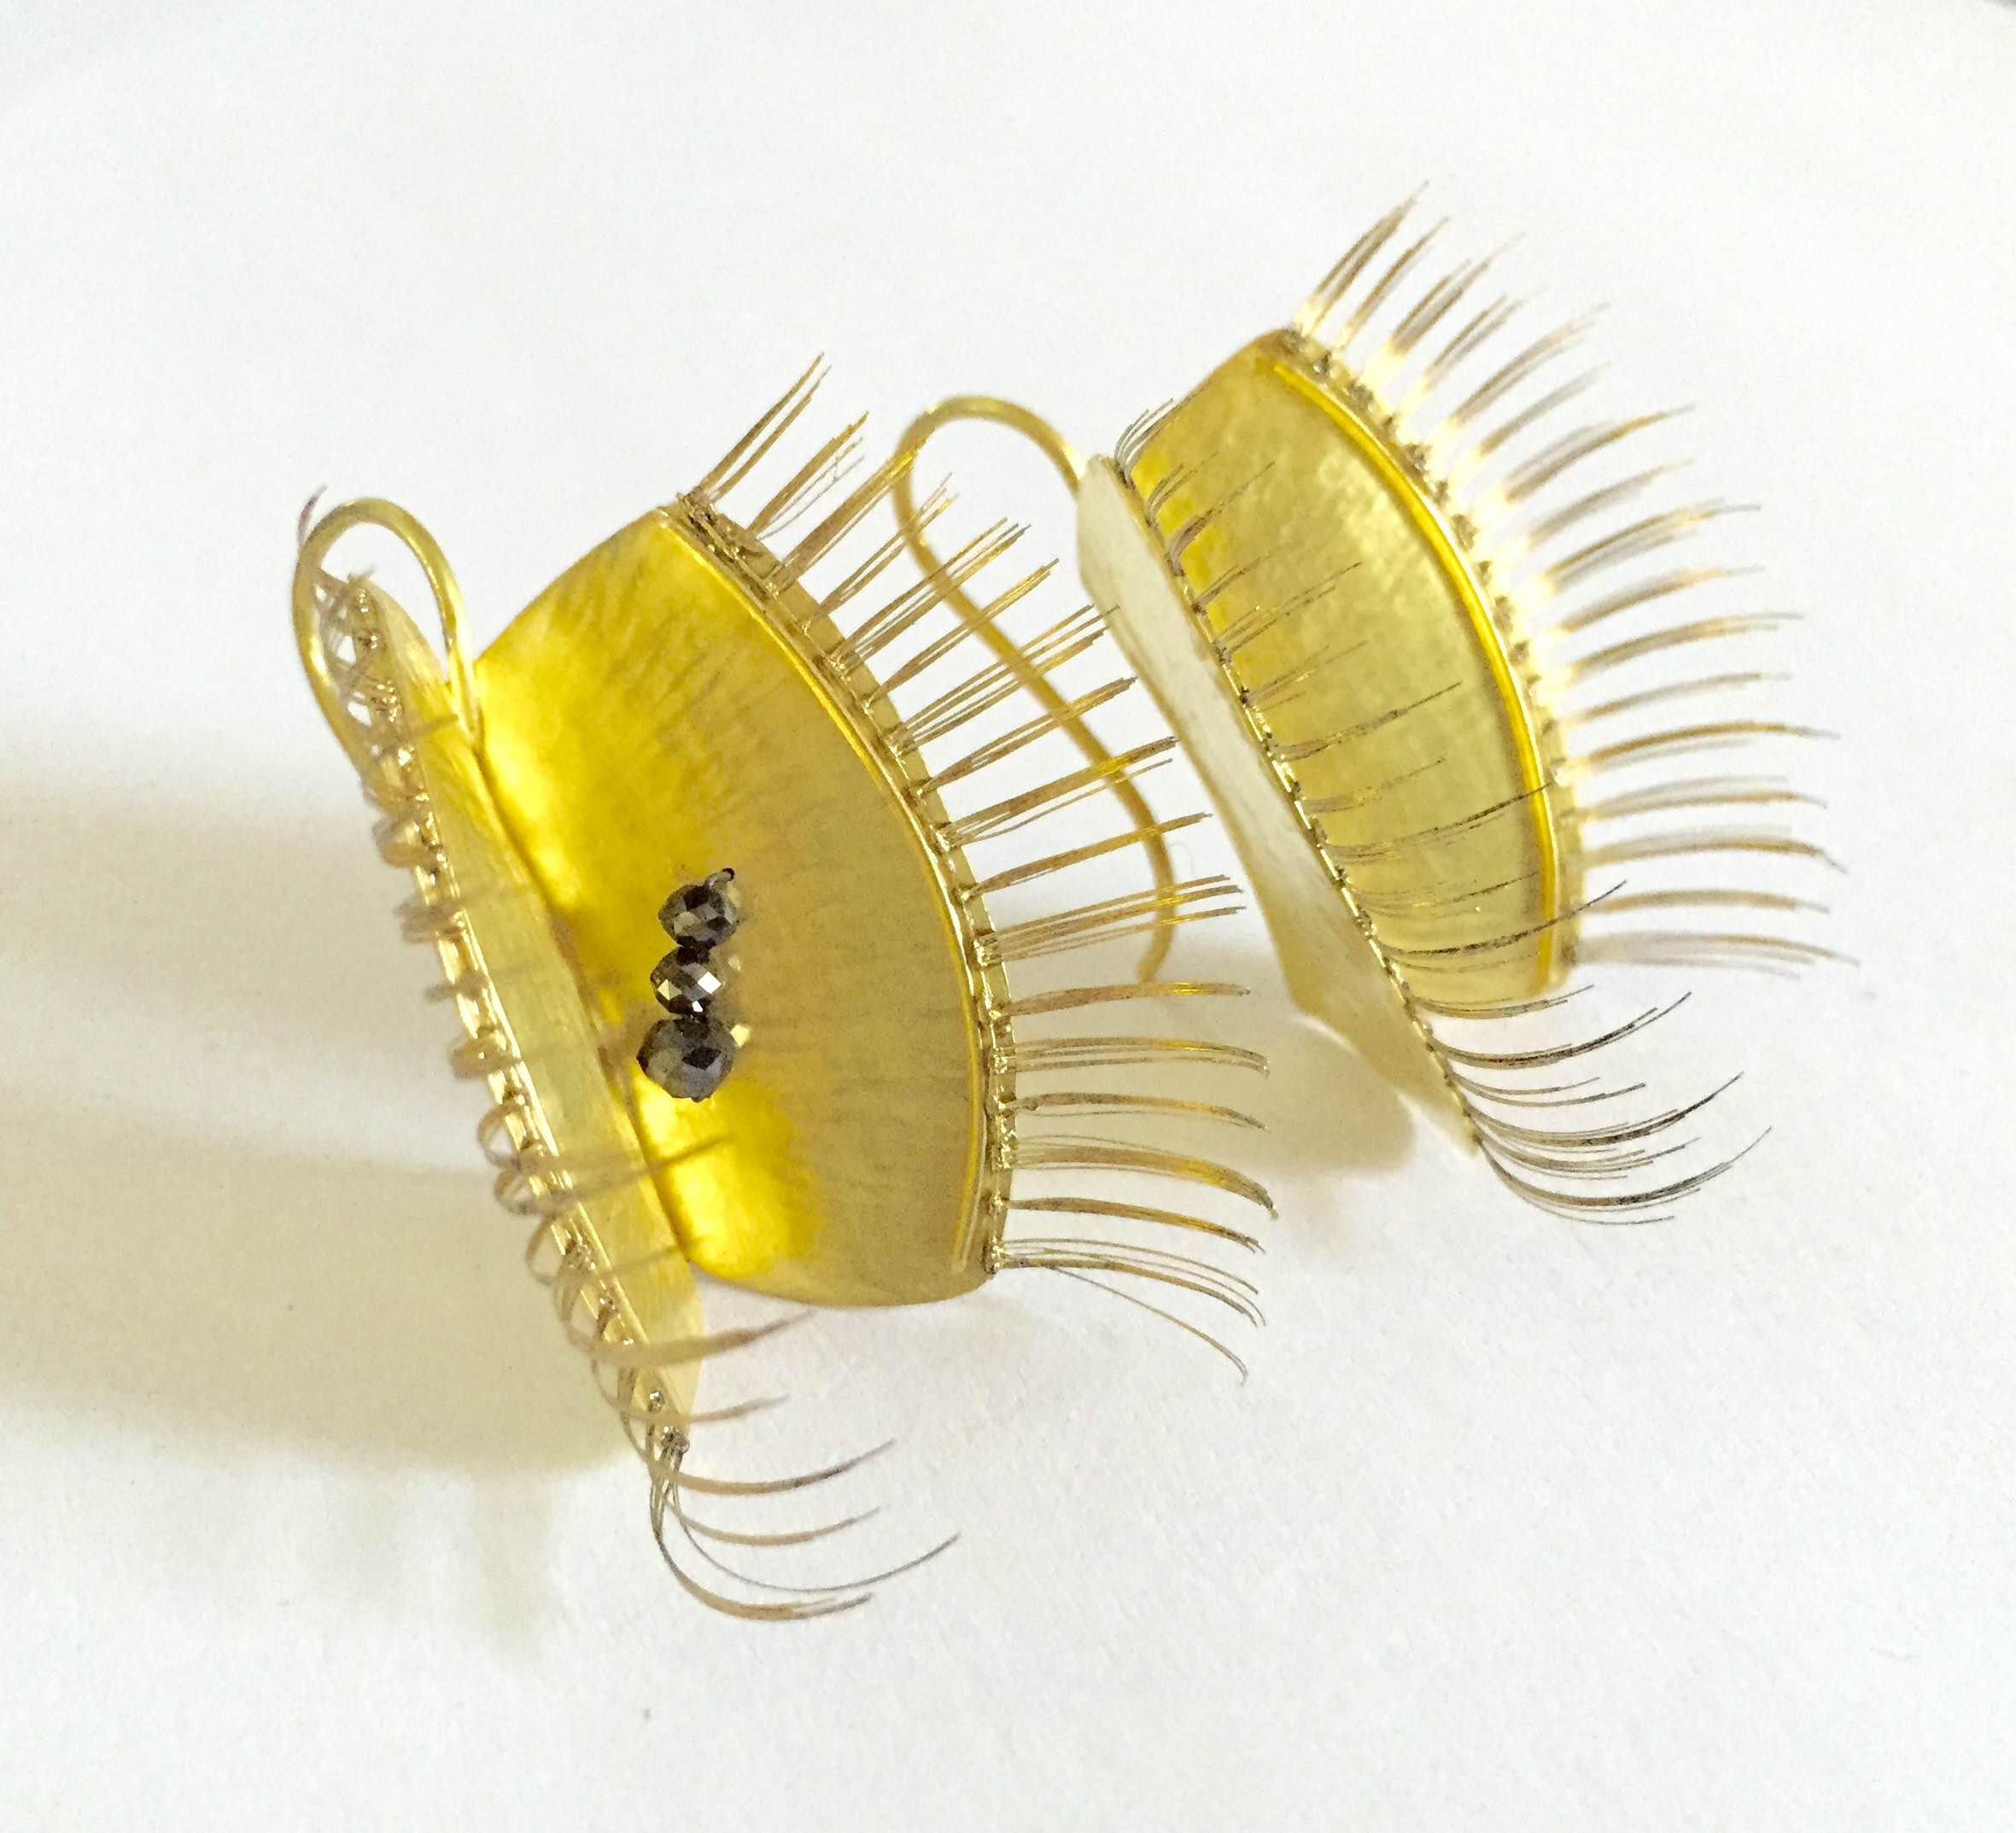 Venus Flytrap Earrings